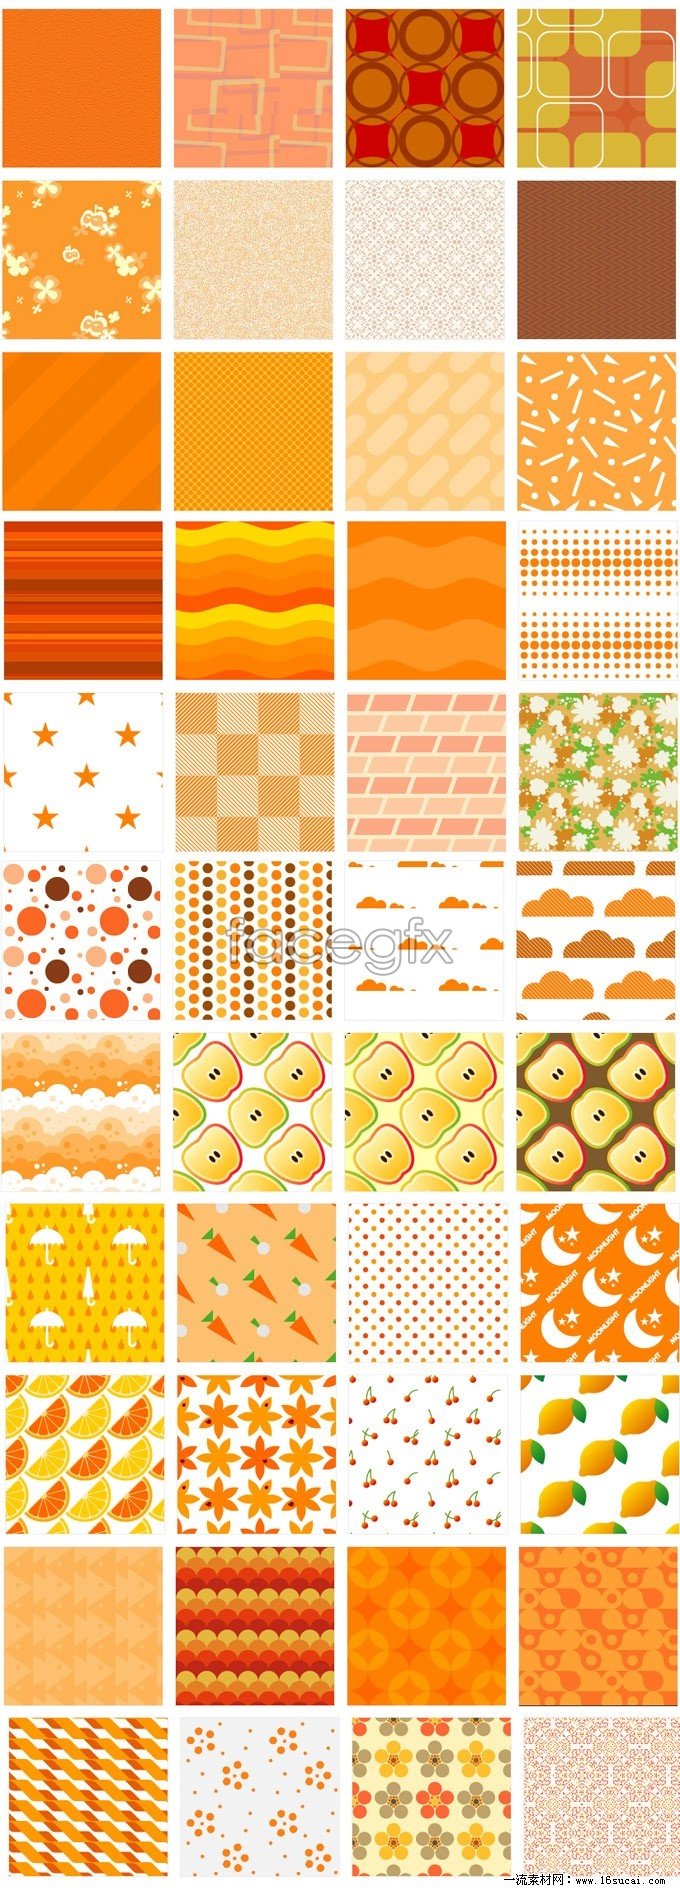 Cute Orange page background Pack